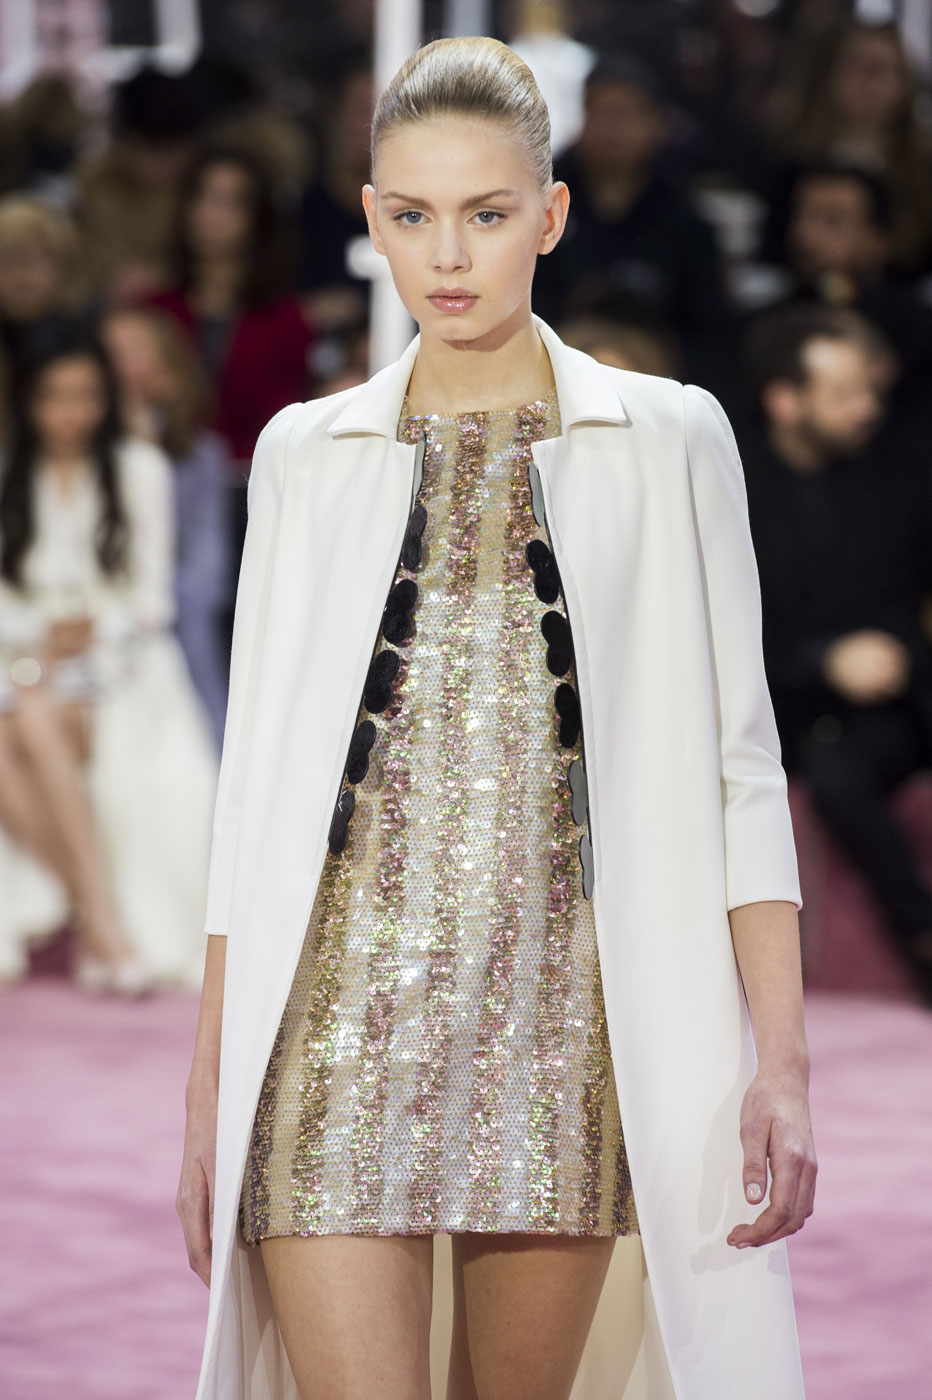 Christian-Dior-fashion-runway-show-haute-couture-paris-spring-summer-2015-the-impression-089